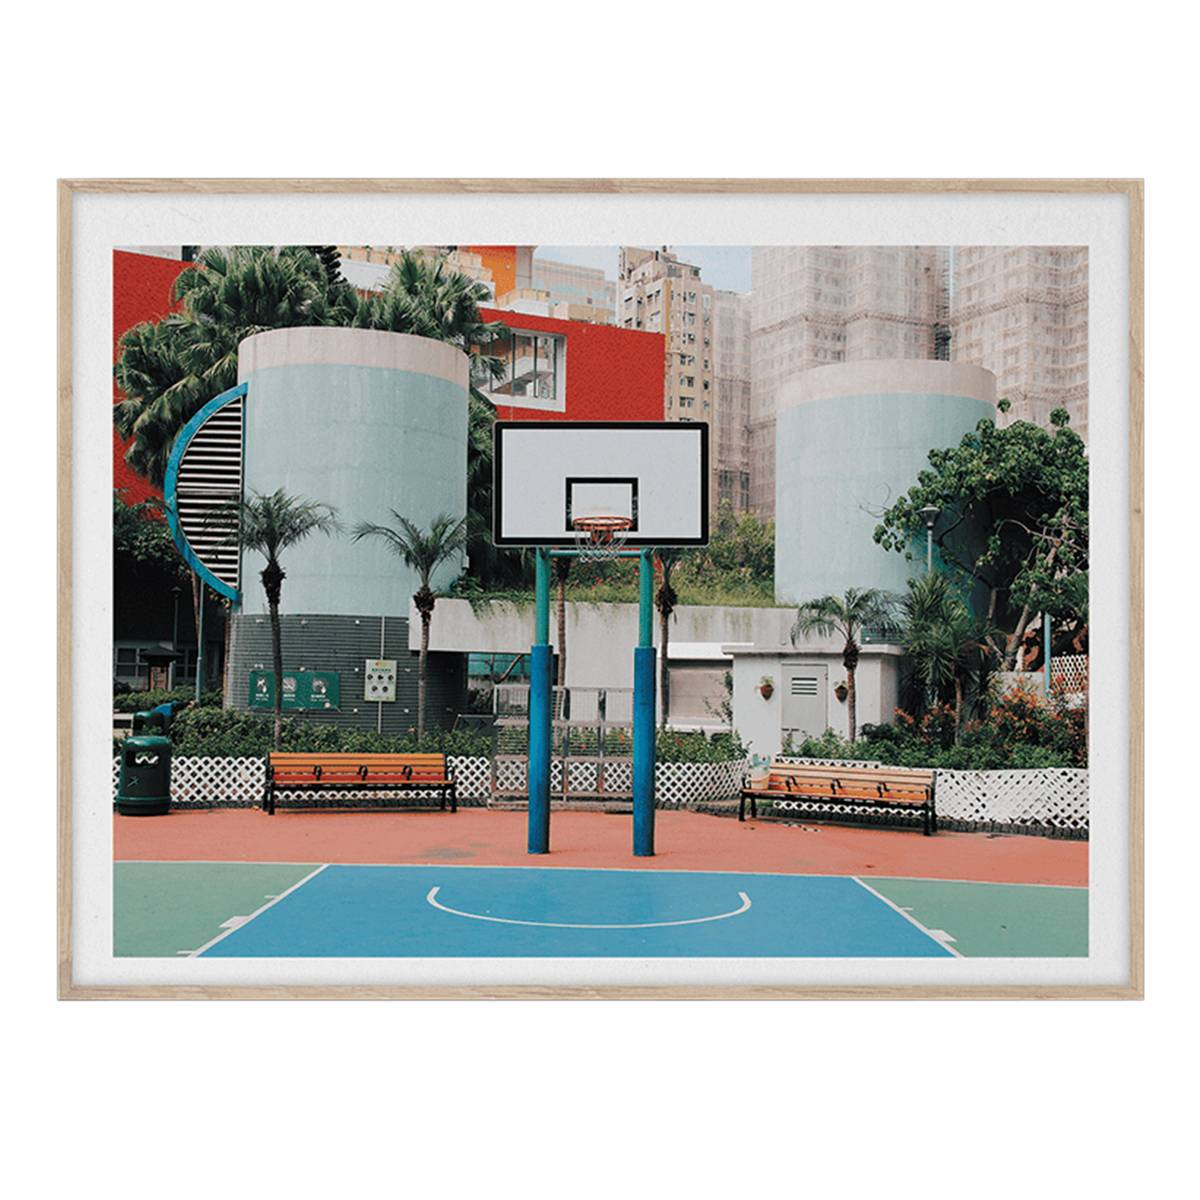 Paper Collective Cities of Basketball 04 (Hong Kong) juliste